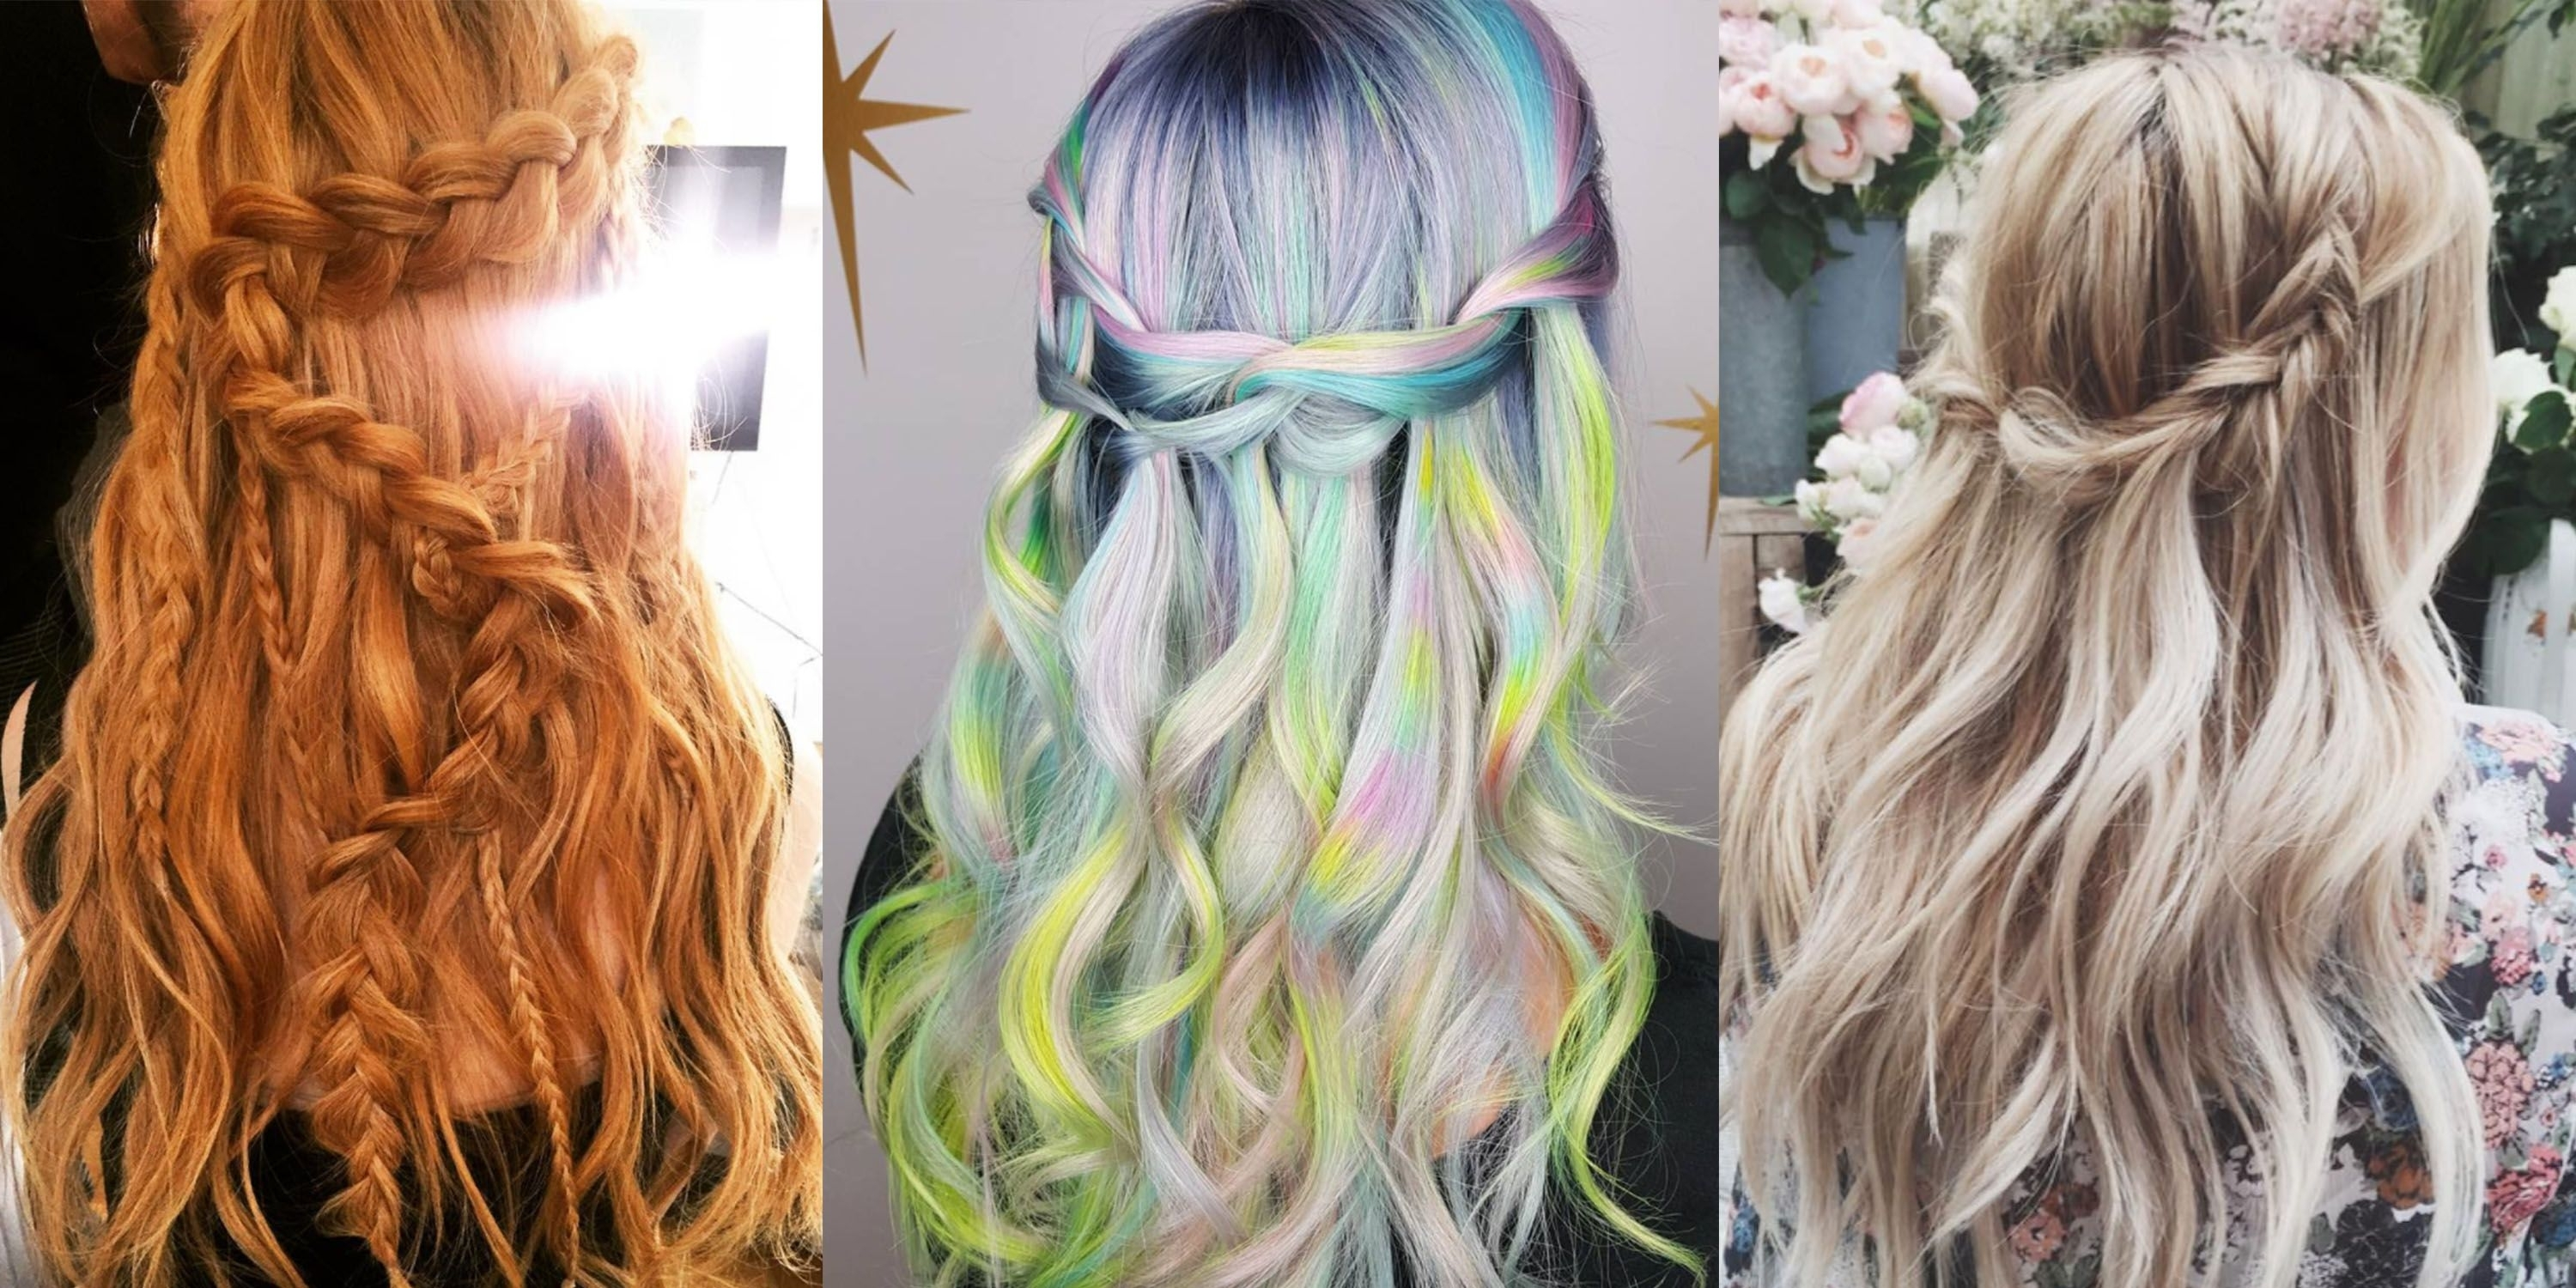 10 Waterfall Braid Hairstyles – Waterfall Braided Hair Inspiration With Regard To Famous Cascading Braided Ponytails (View 3 of 20)